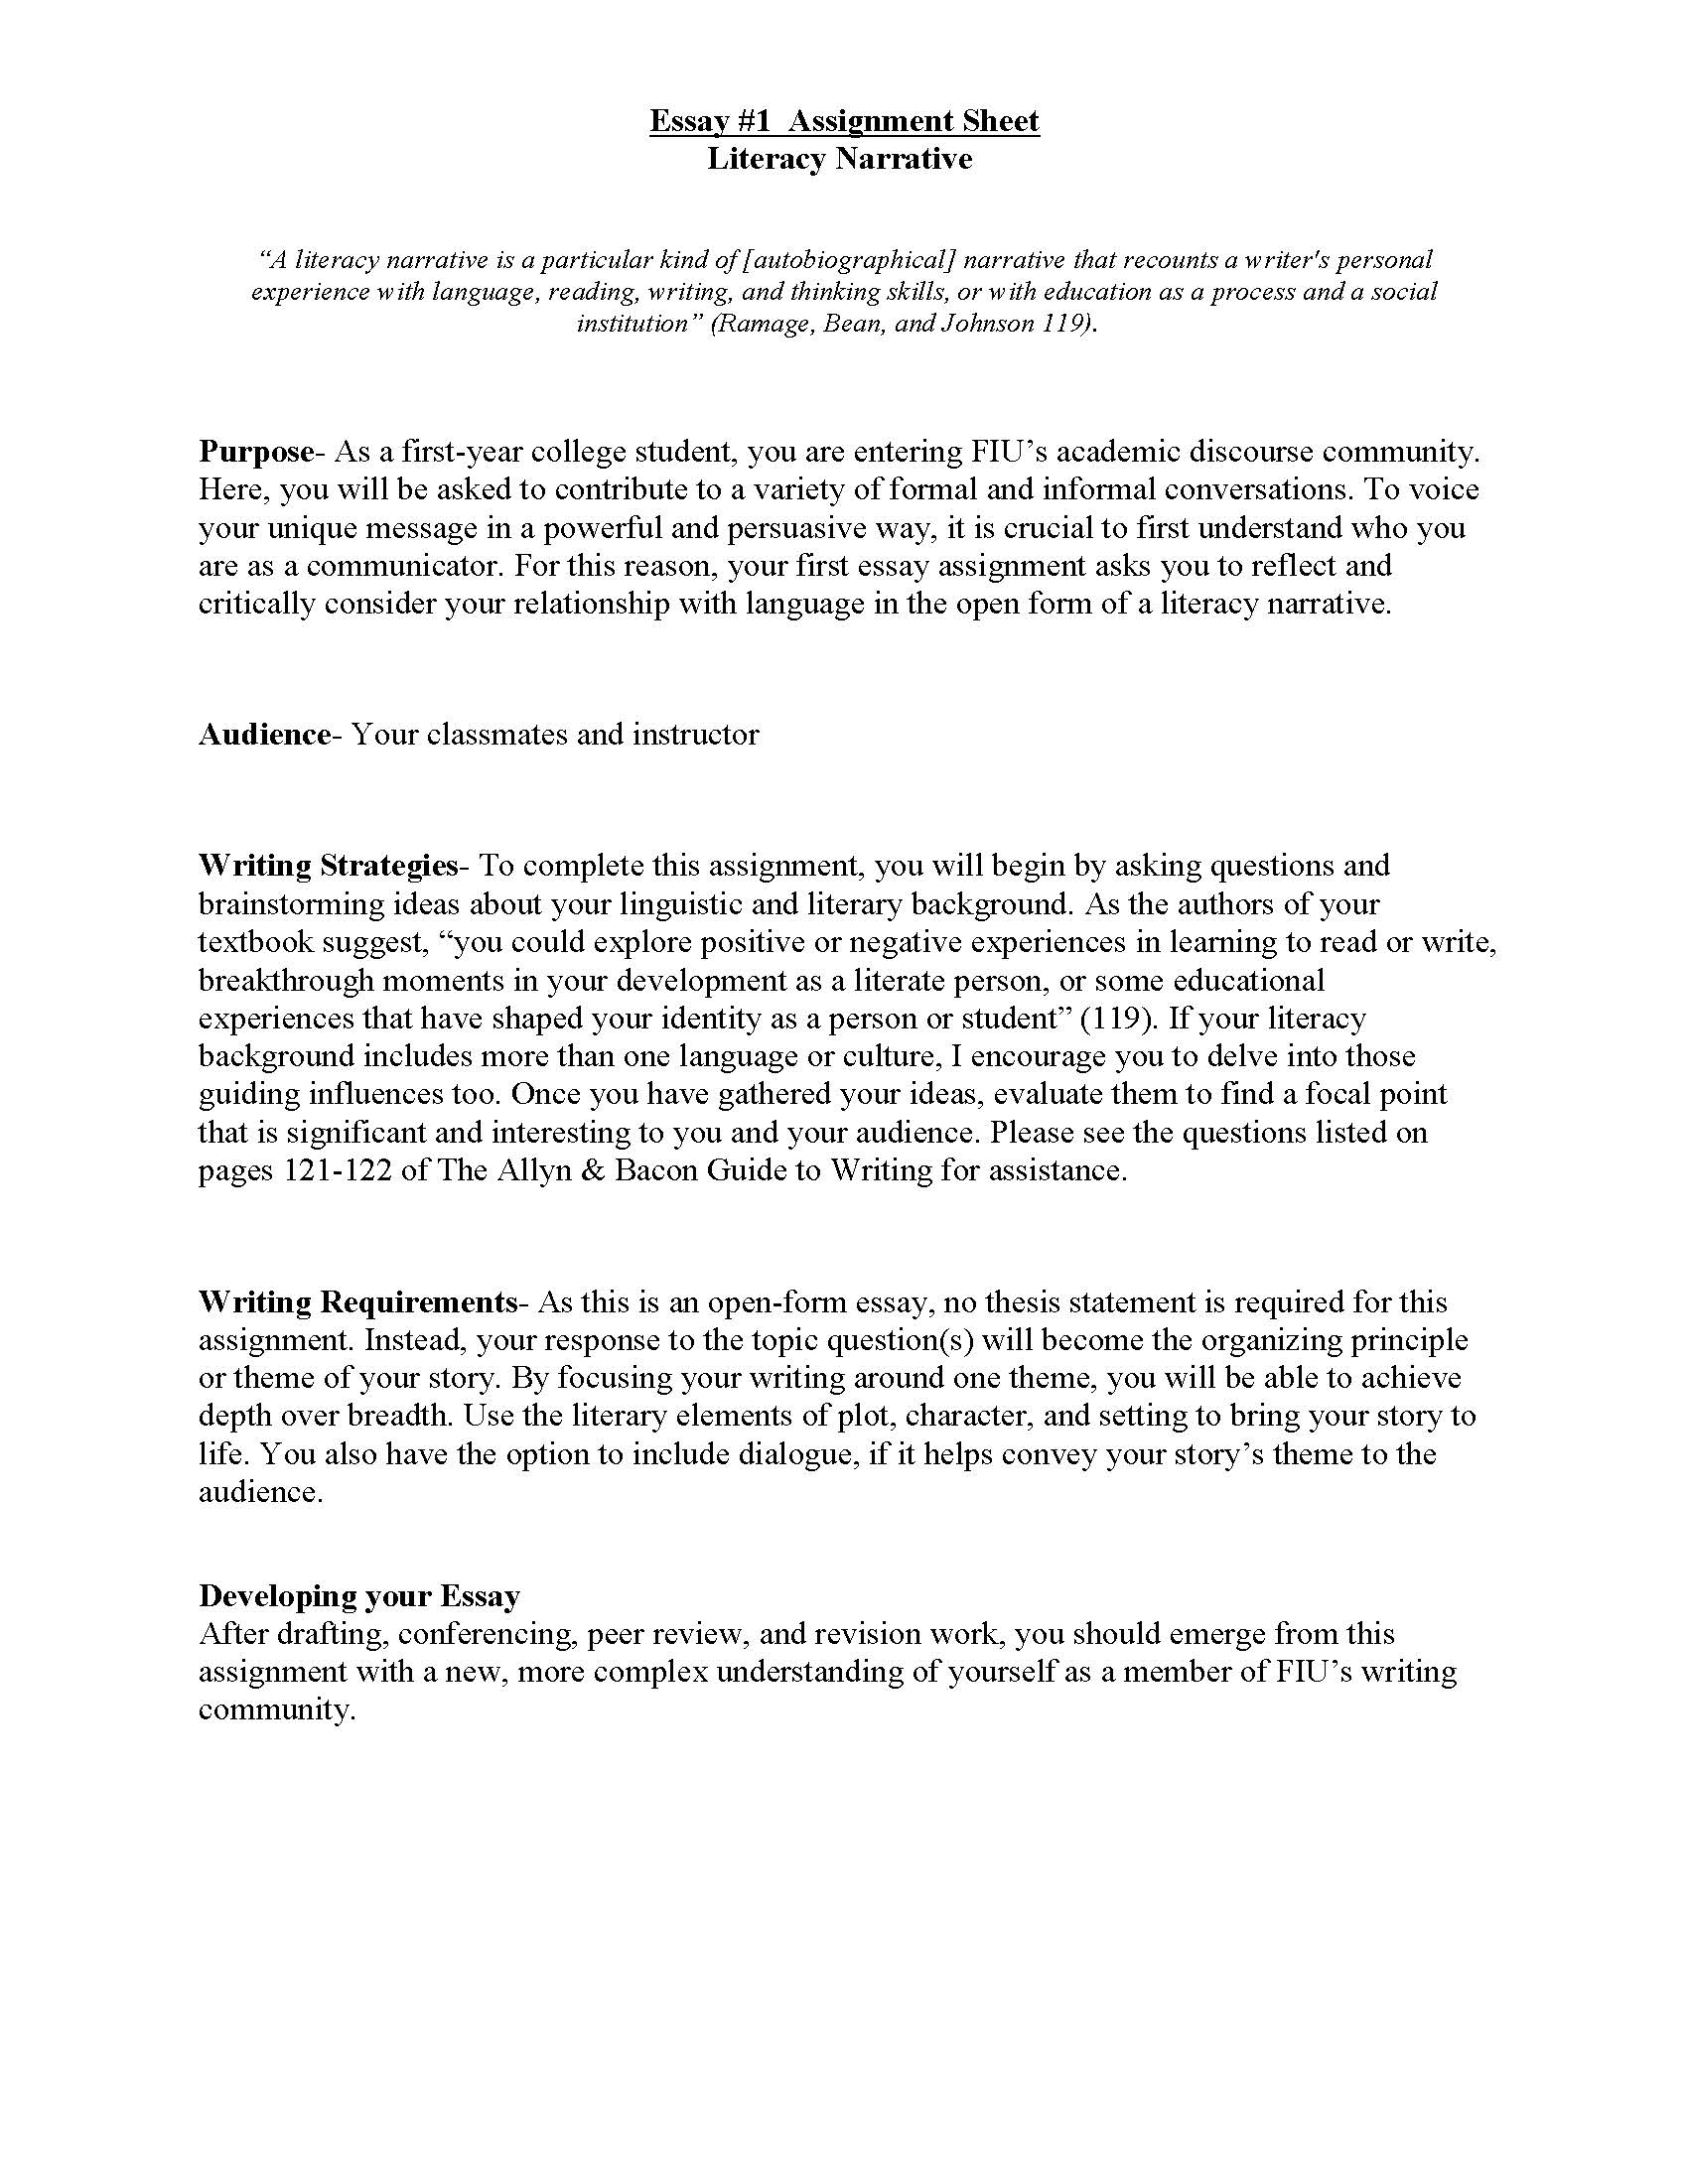 016 Personal Narrative Essay Example Literacy Unit Assignment Spring 2012 Page 1 Stirring Examples Free Topics For Grade 7 8th Full